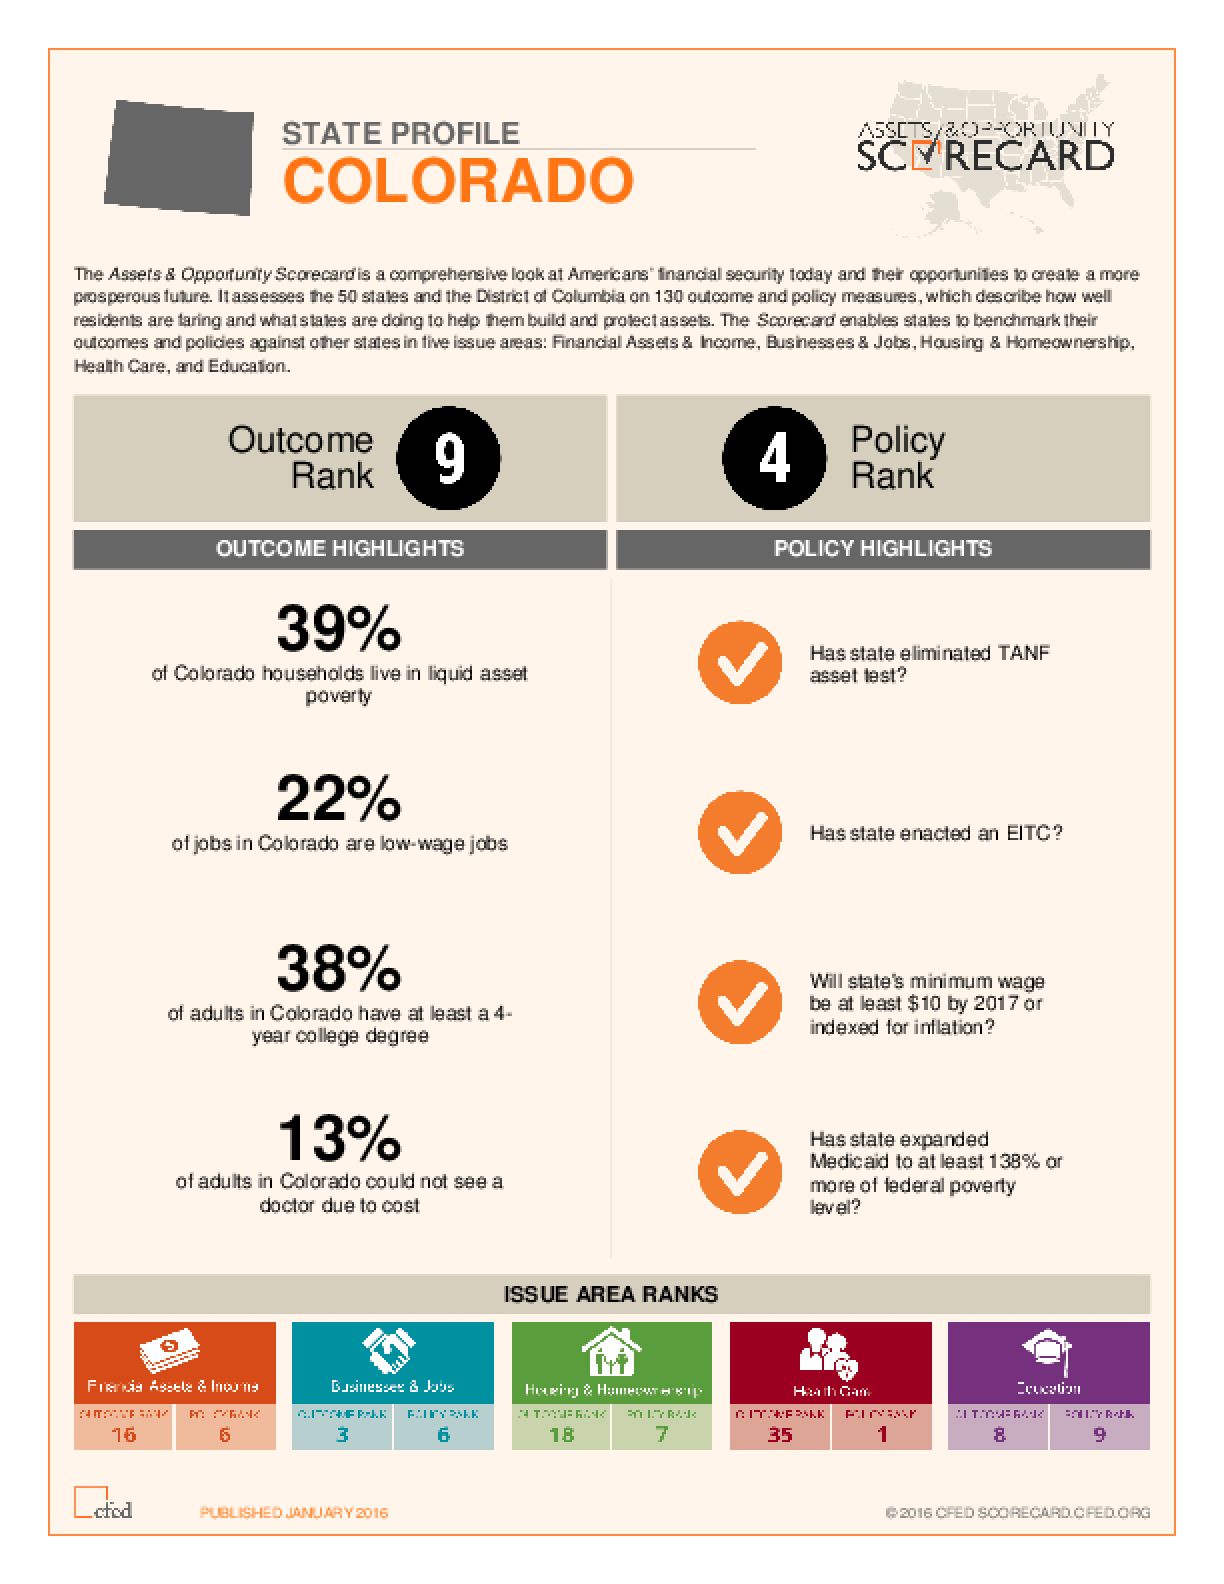 State Profile Colorado: Assets and Opportunity Scorecard